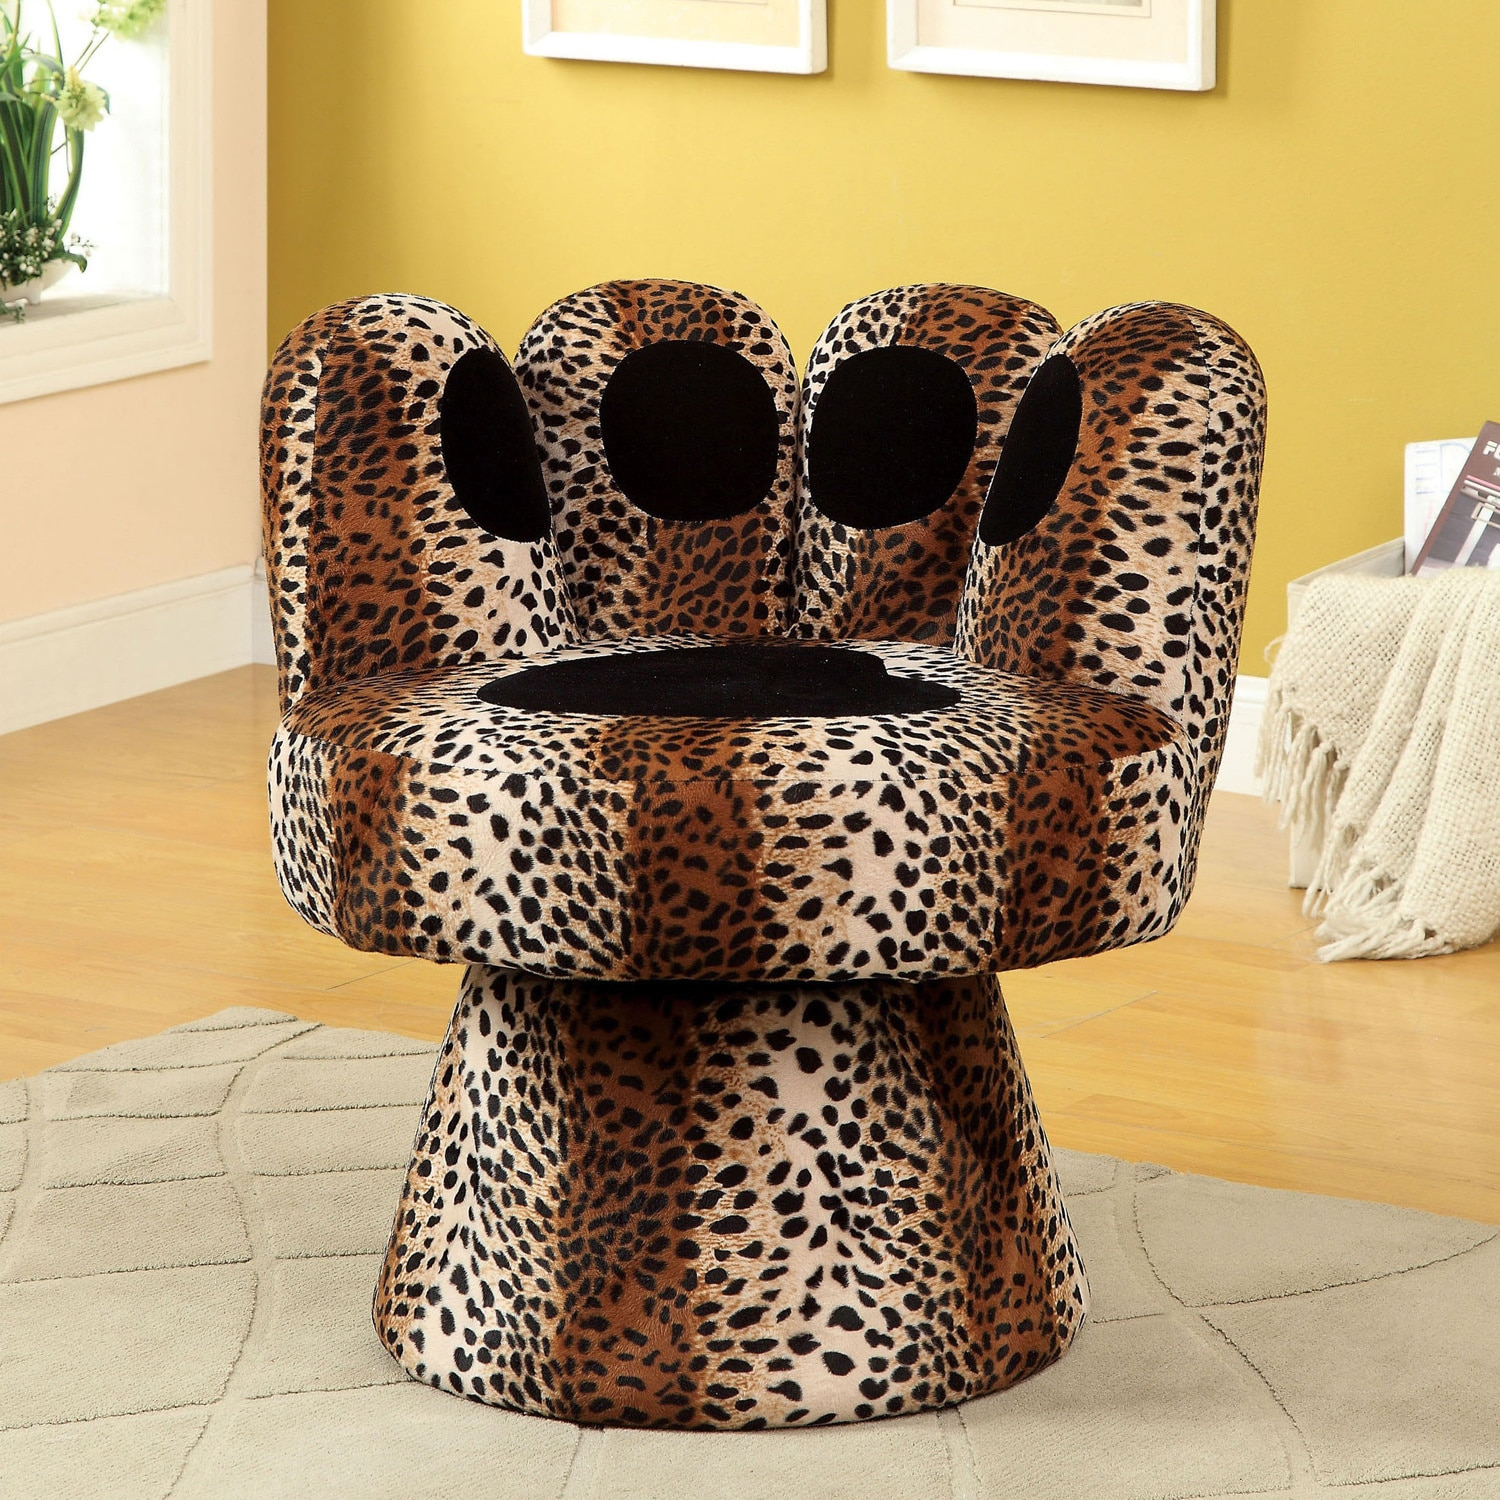 Furniture of America  Feline Paw-inspired Swivel Accent Chair Beige, Black